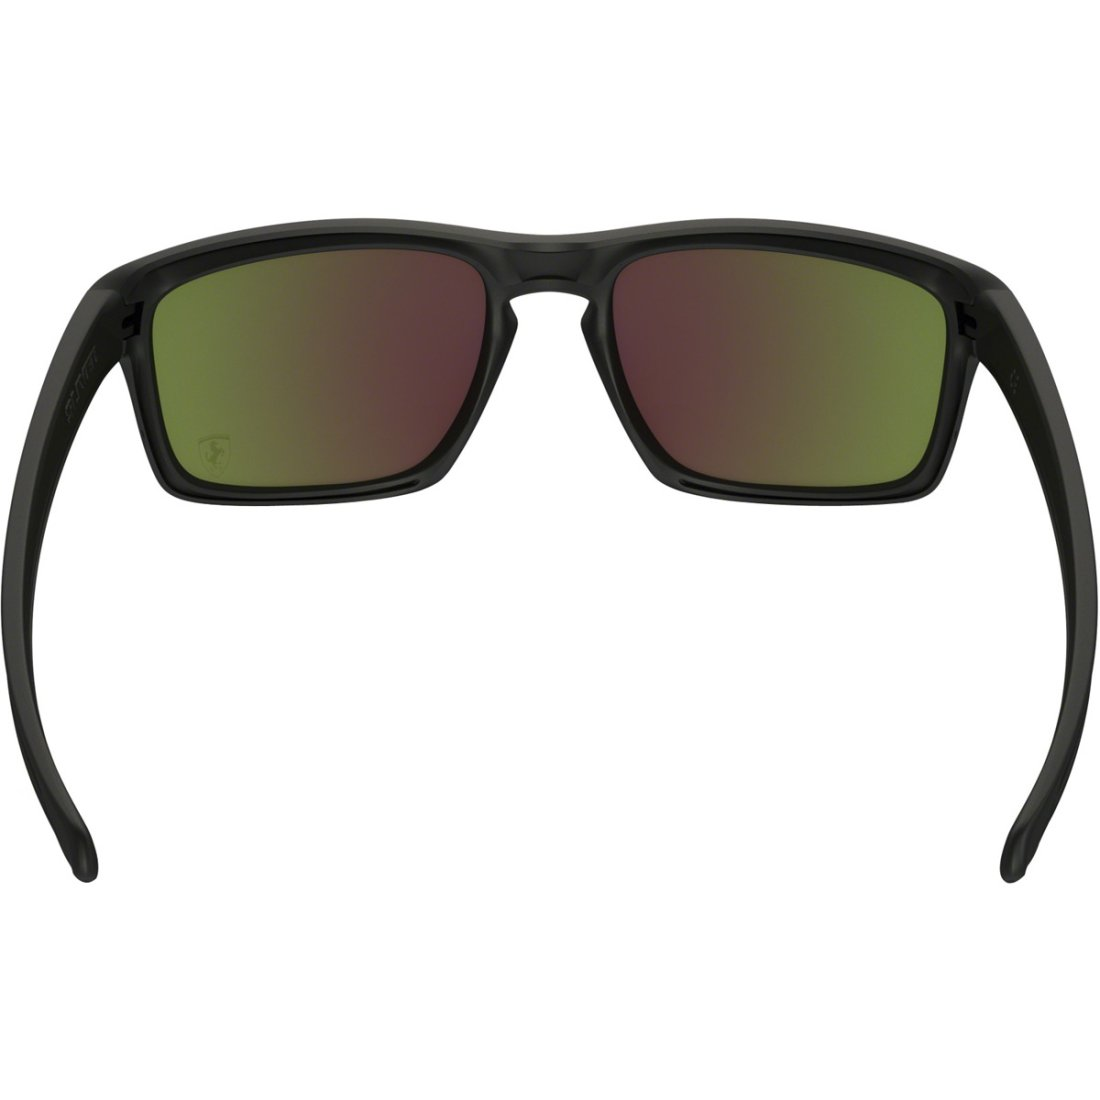 a7a4a0a94 Óculos de sol OAKLEY Sliver Scuderia Ferrari Collection Matte Black / Ruby  Iridium